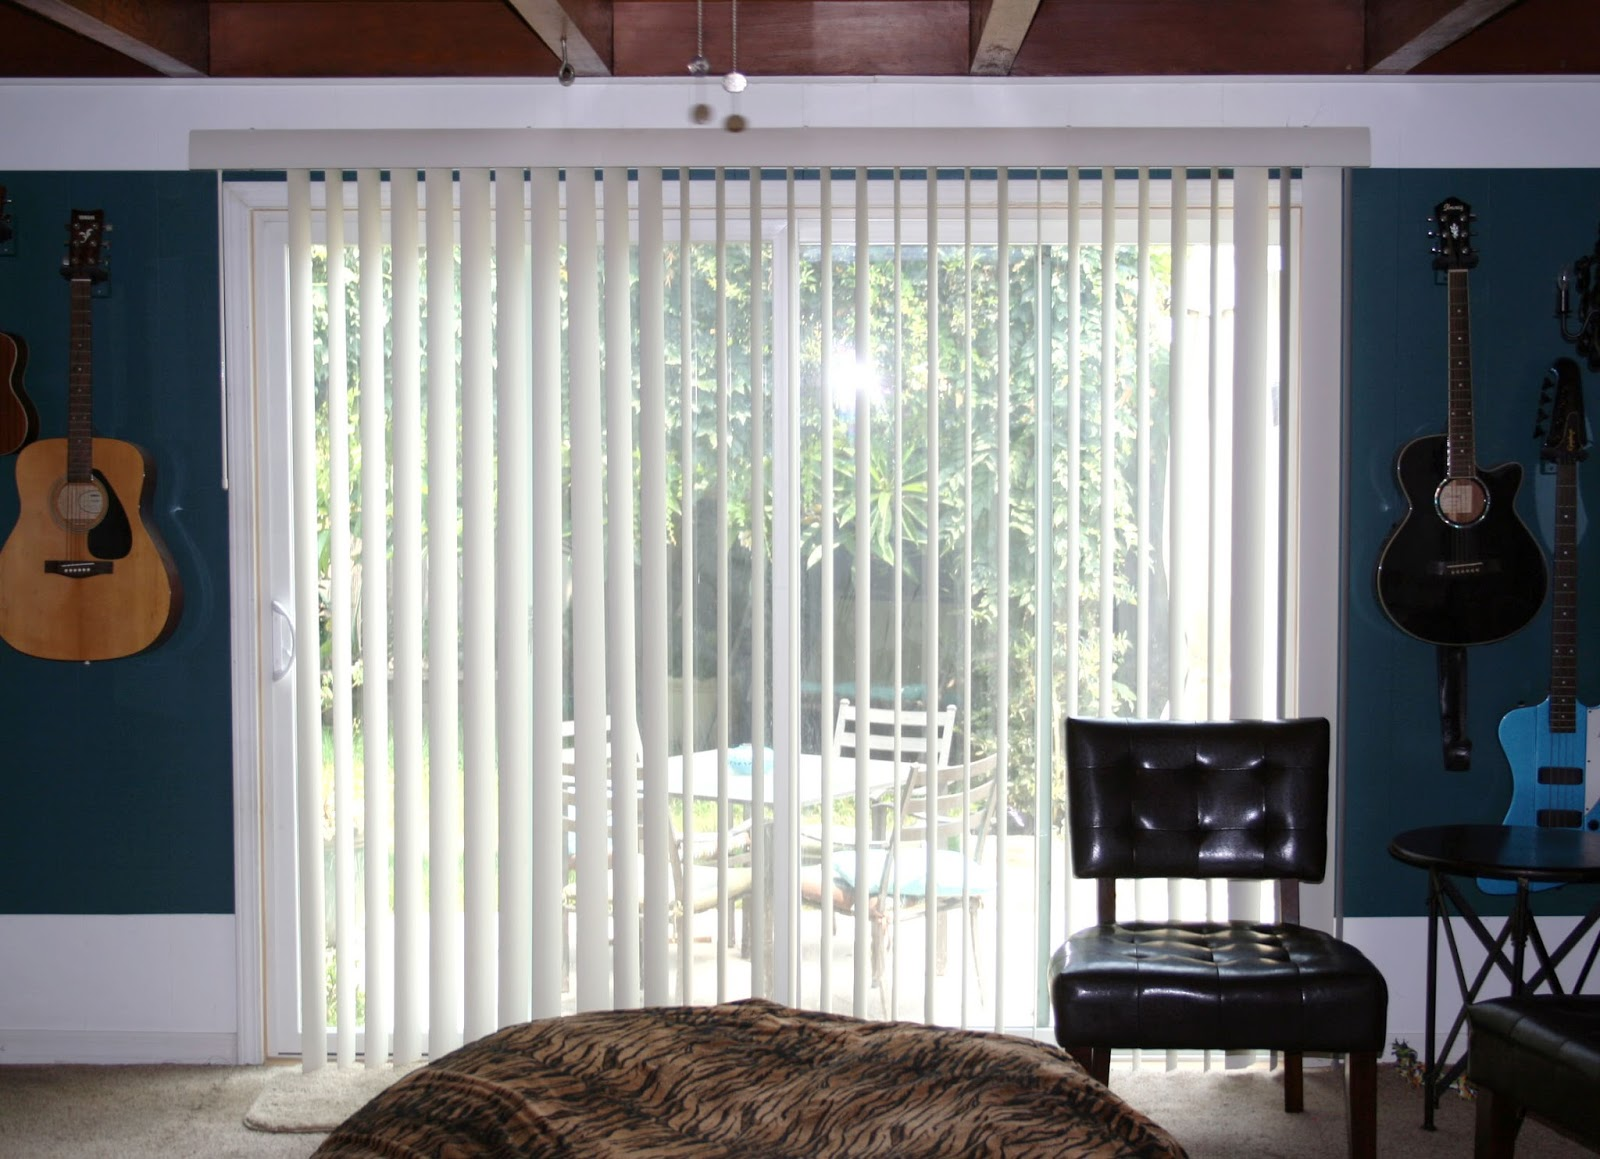 hanging curtains on a vertical blind track - Hanging Drapery